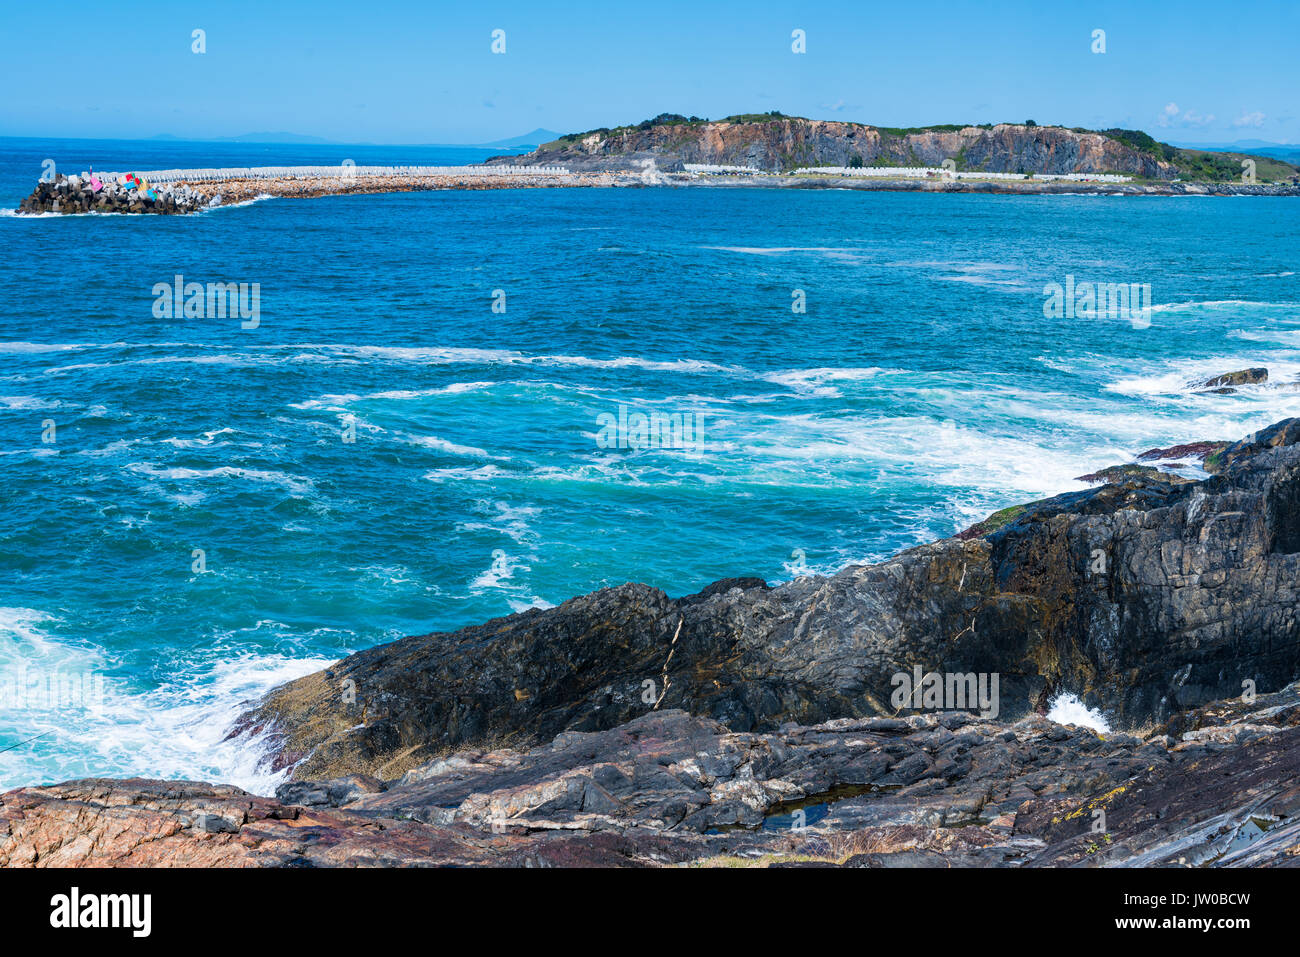 Views from Mutton bird island, Coffs Harbour, NSW, Australia. - Stock Image